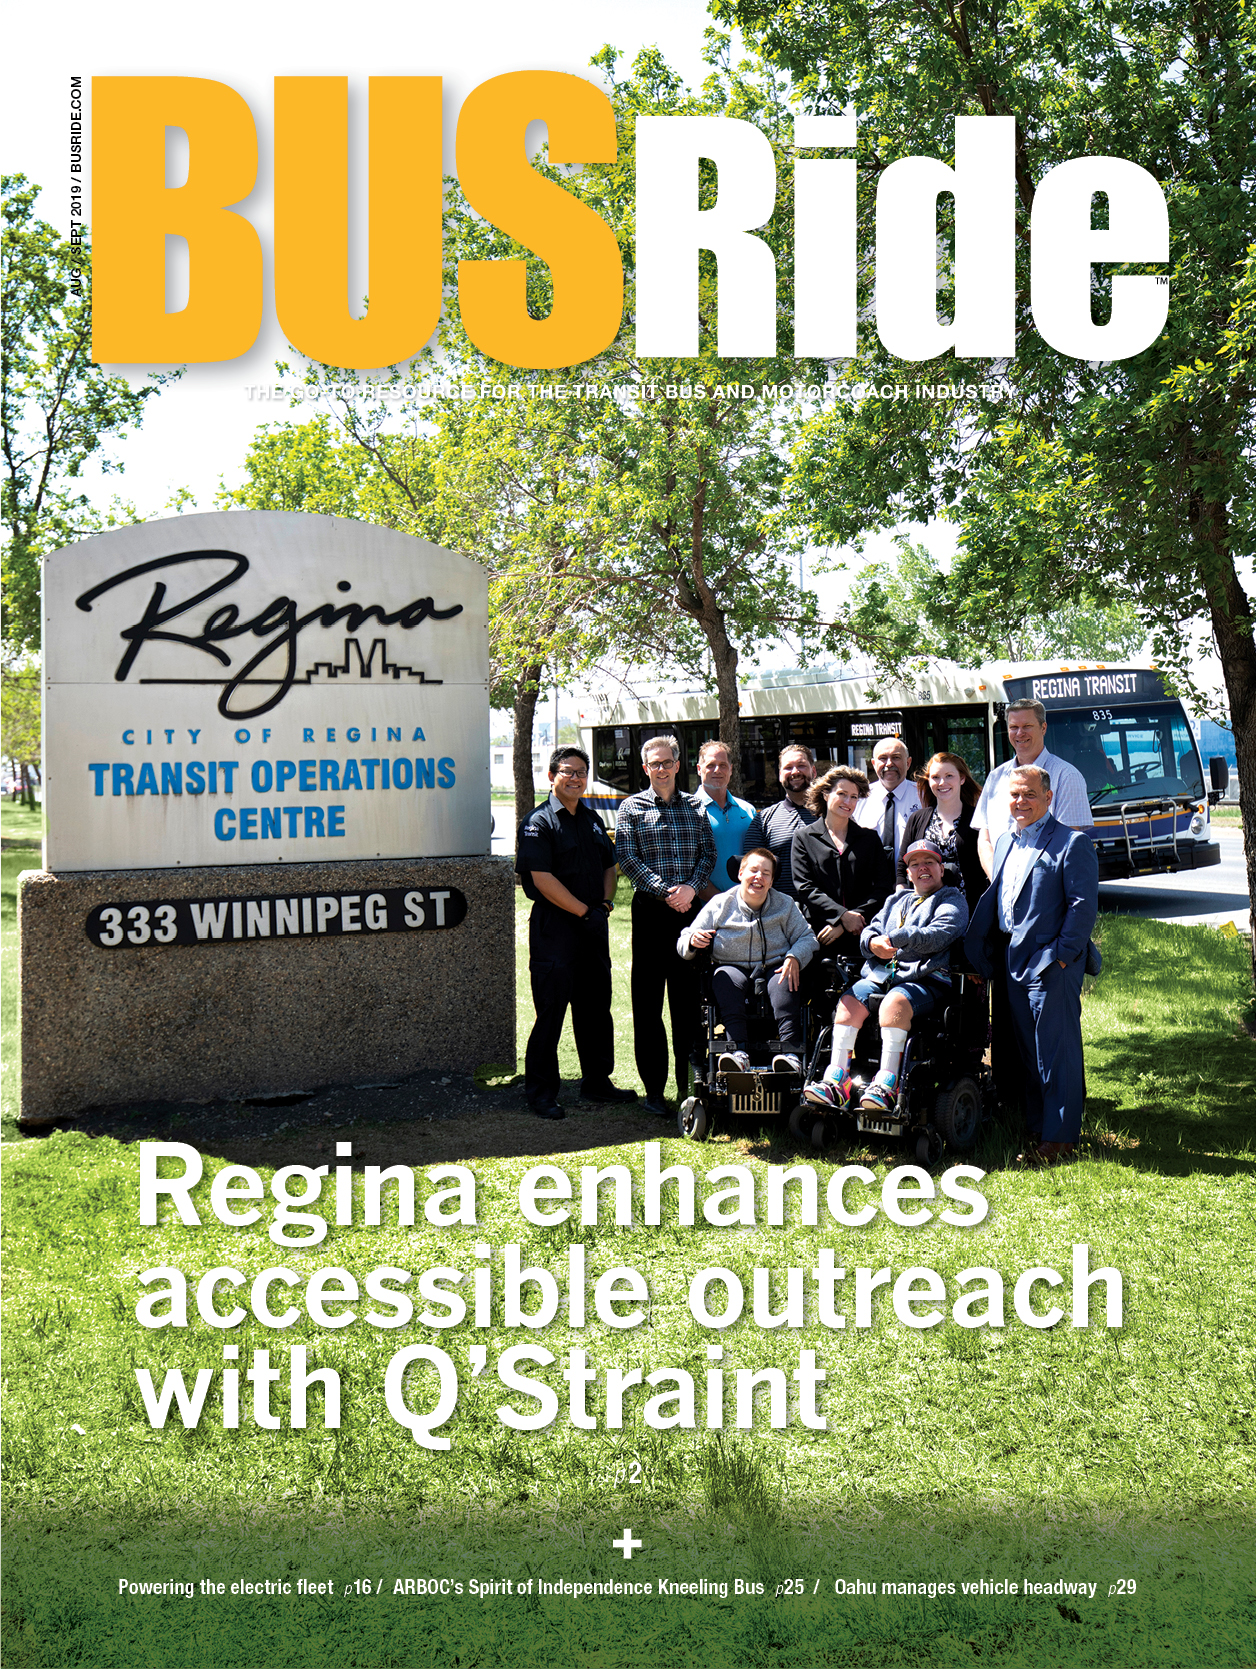 Regina enhances accessible transit with Q'Straint